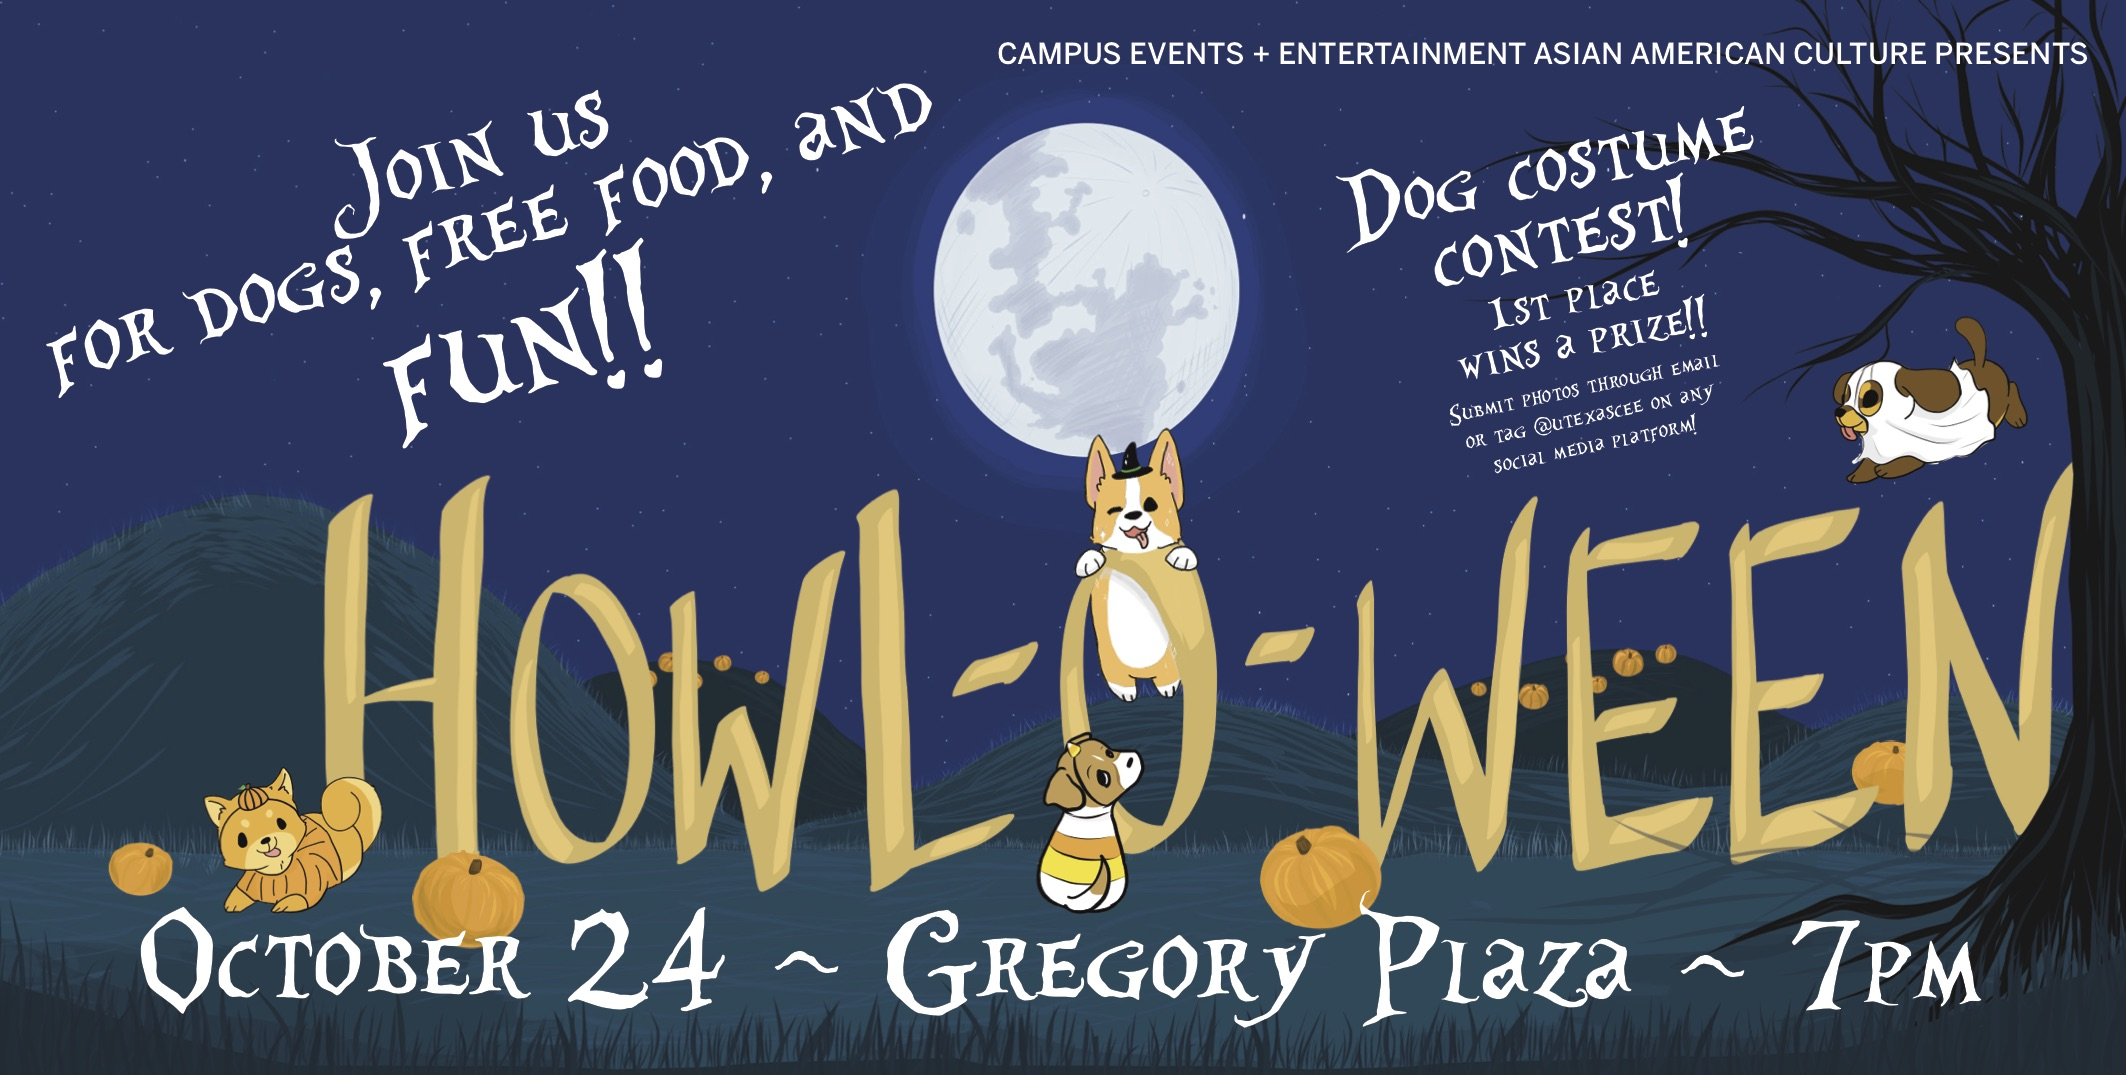 Howl- a- ween will take place at Gregory Plaza on October 24th at 7 pm